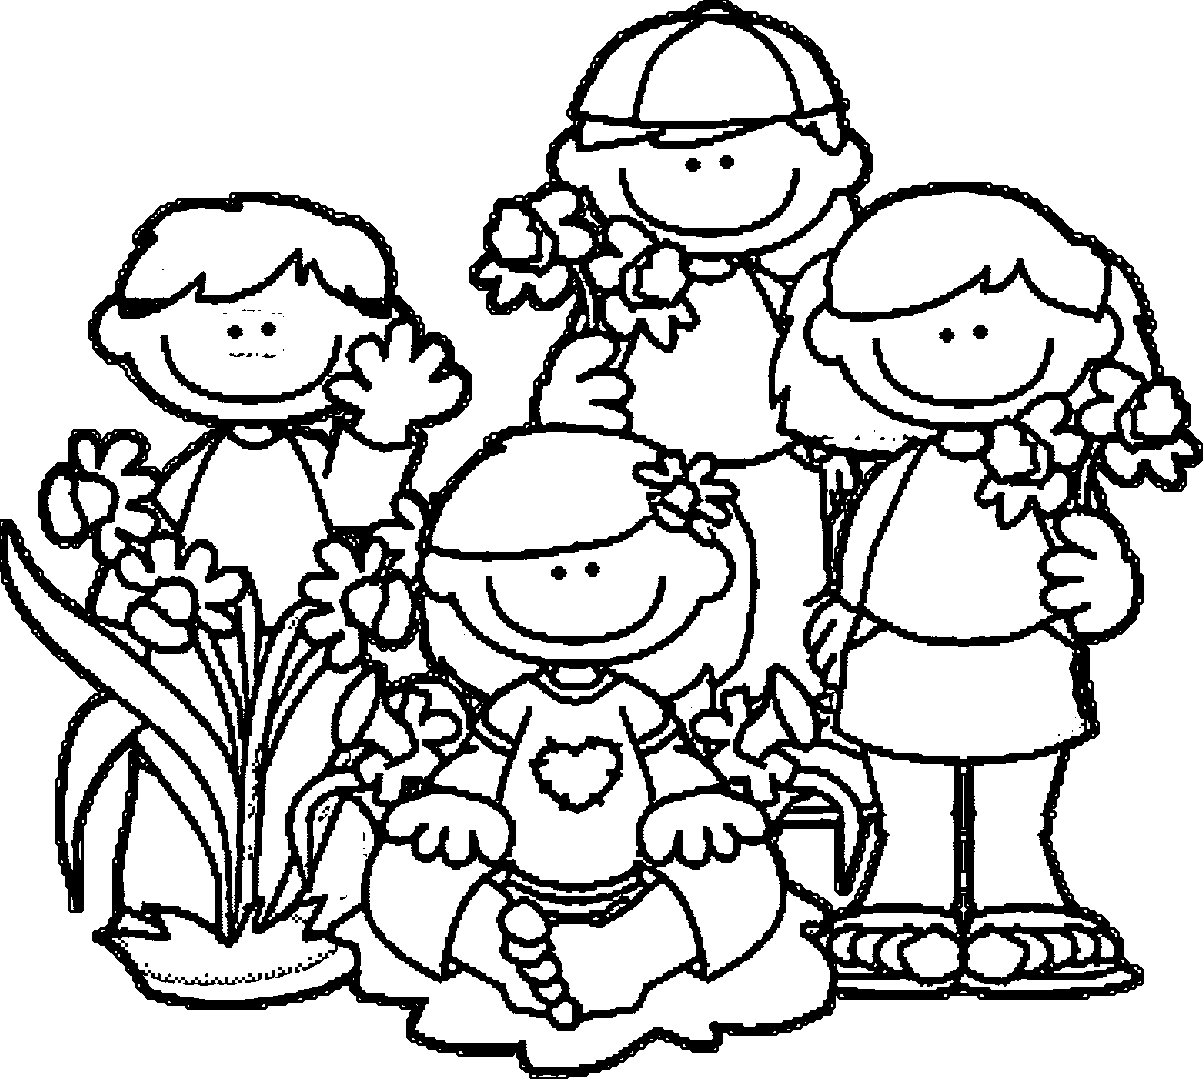 1203x1079 Spring Break Coloring Pages Collections Free Coloring Pages